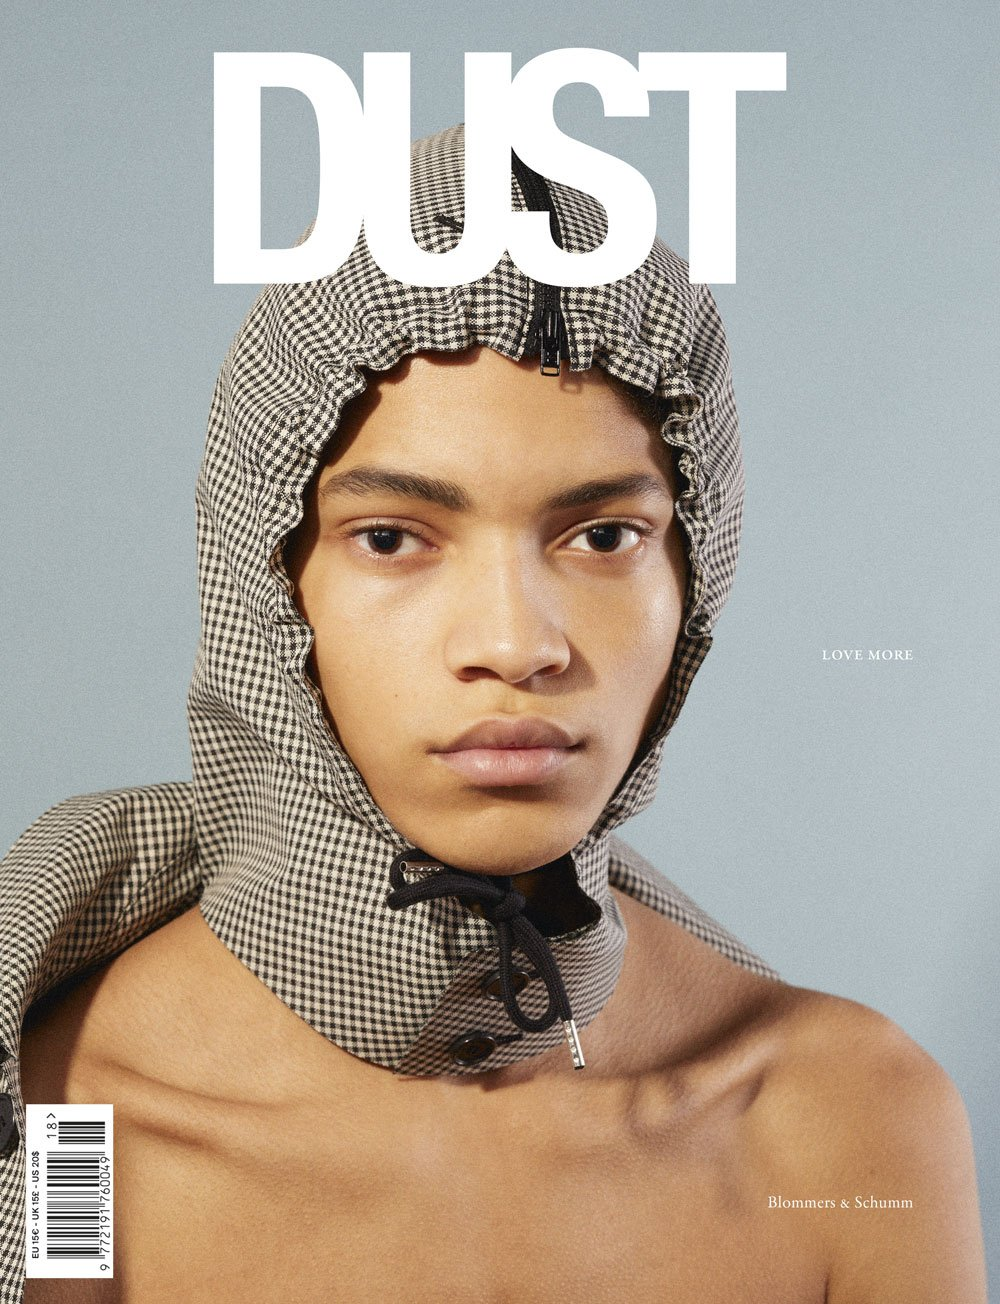 DUST ISSUE #18 LOVE MORE S/S21 – Cover #6